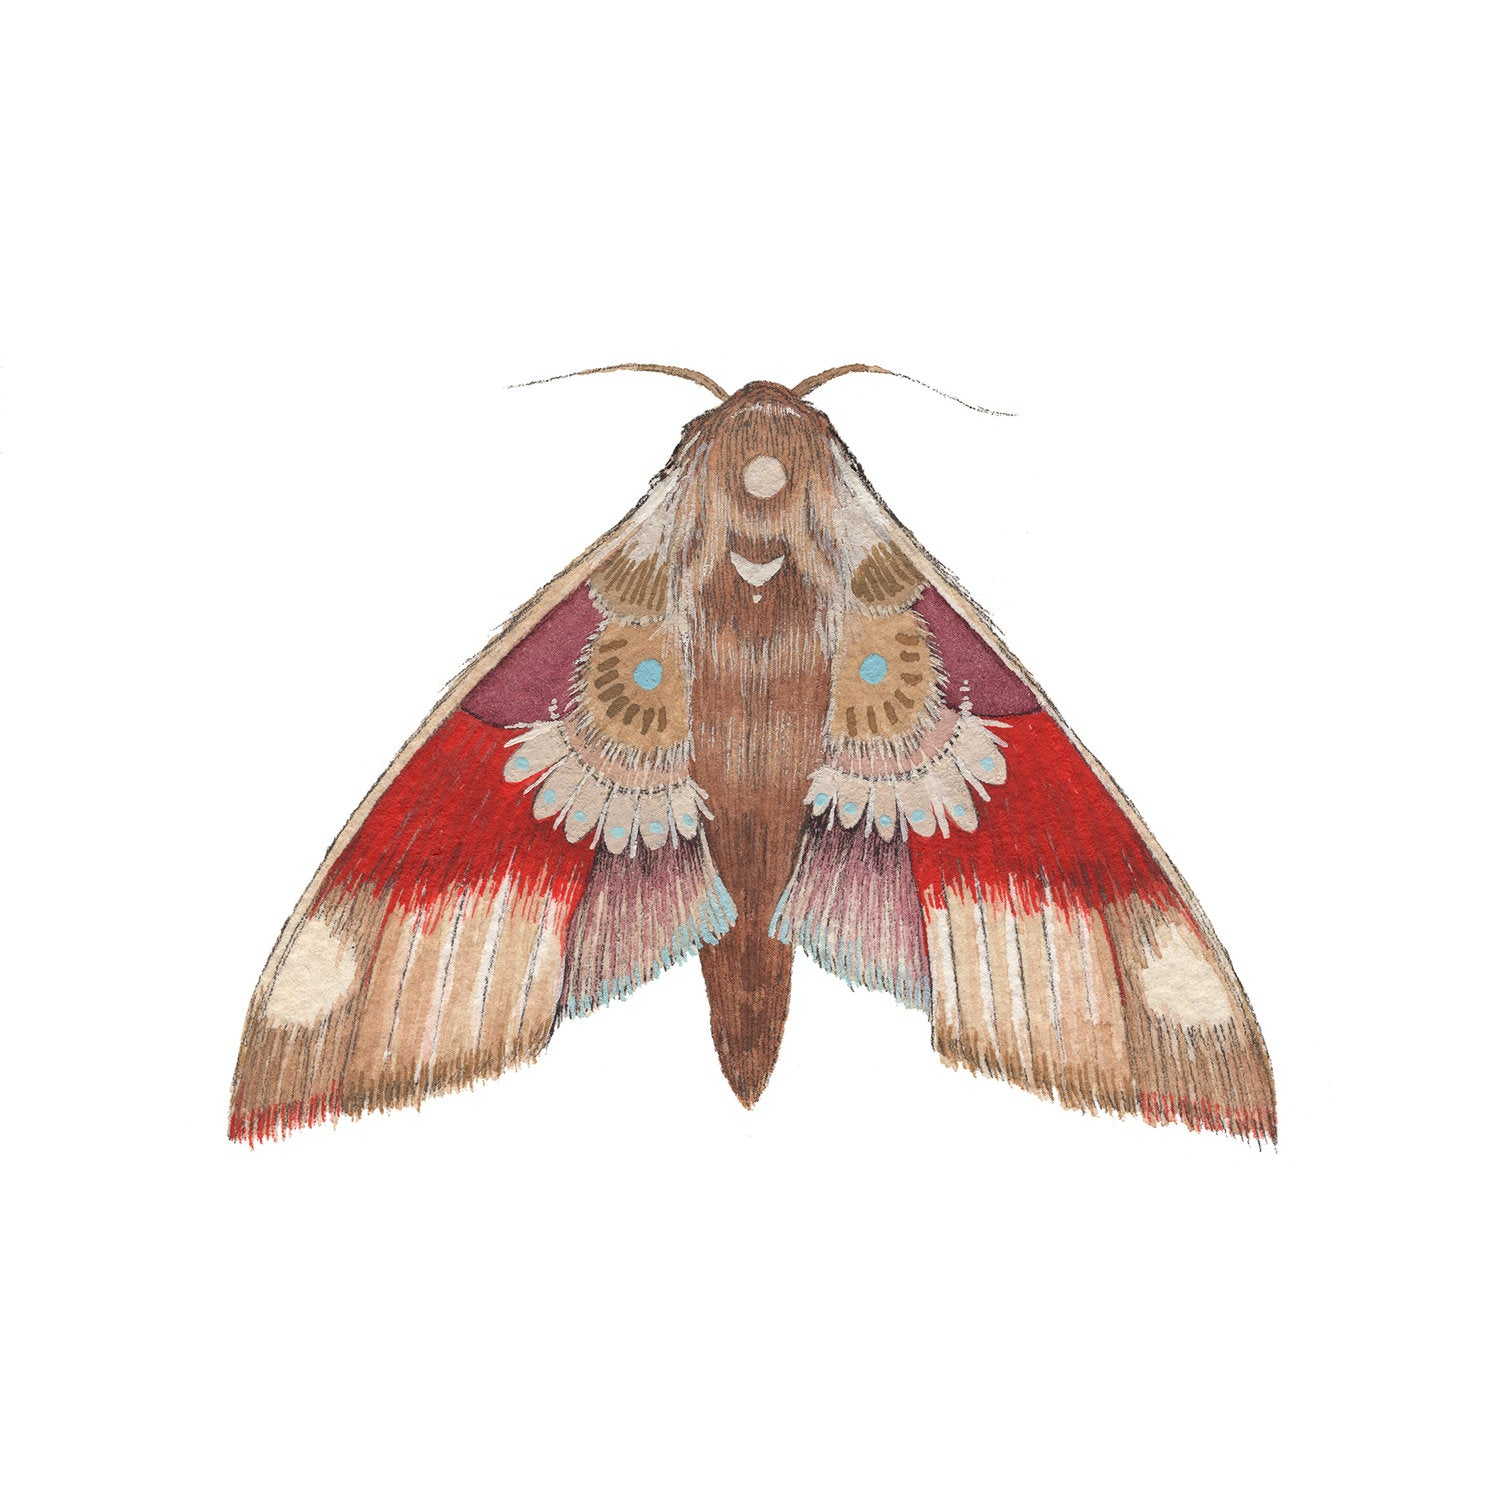 Print 5x7 - Collector: Moth 5